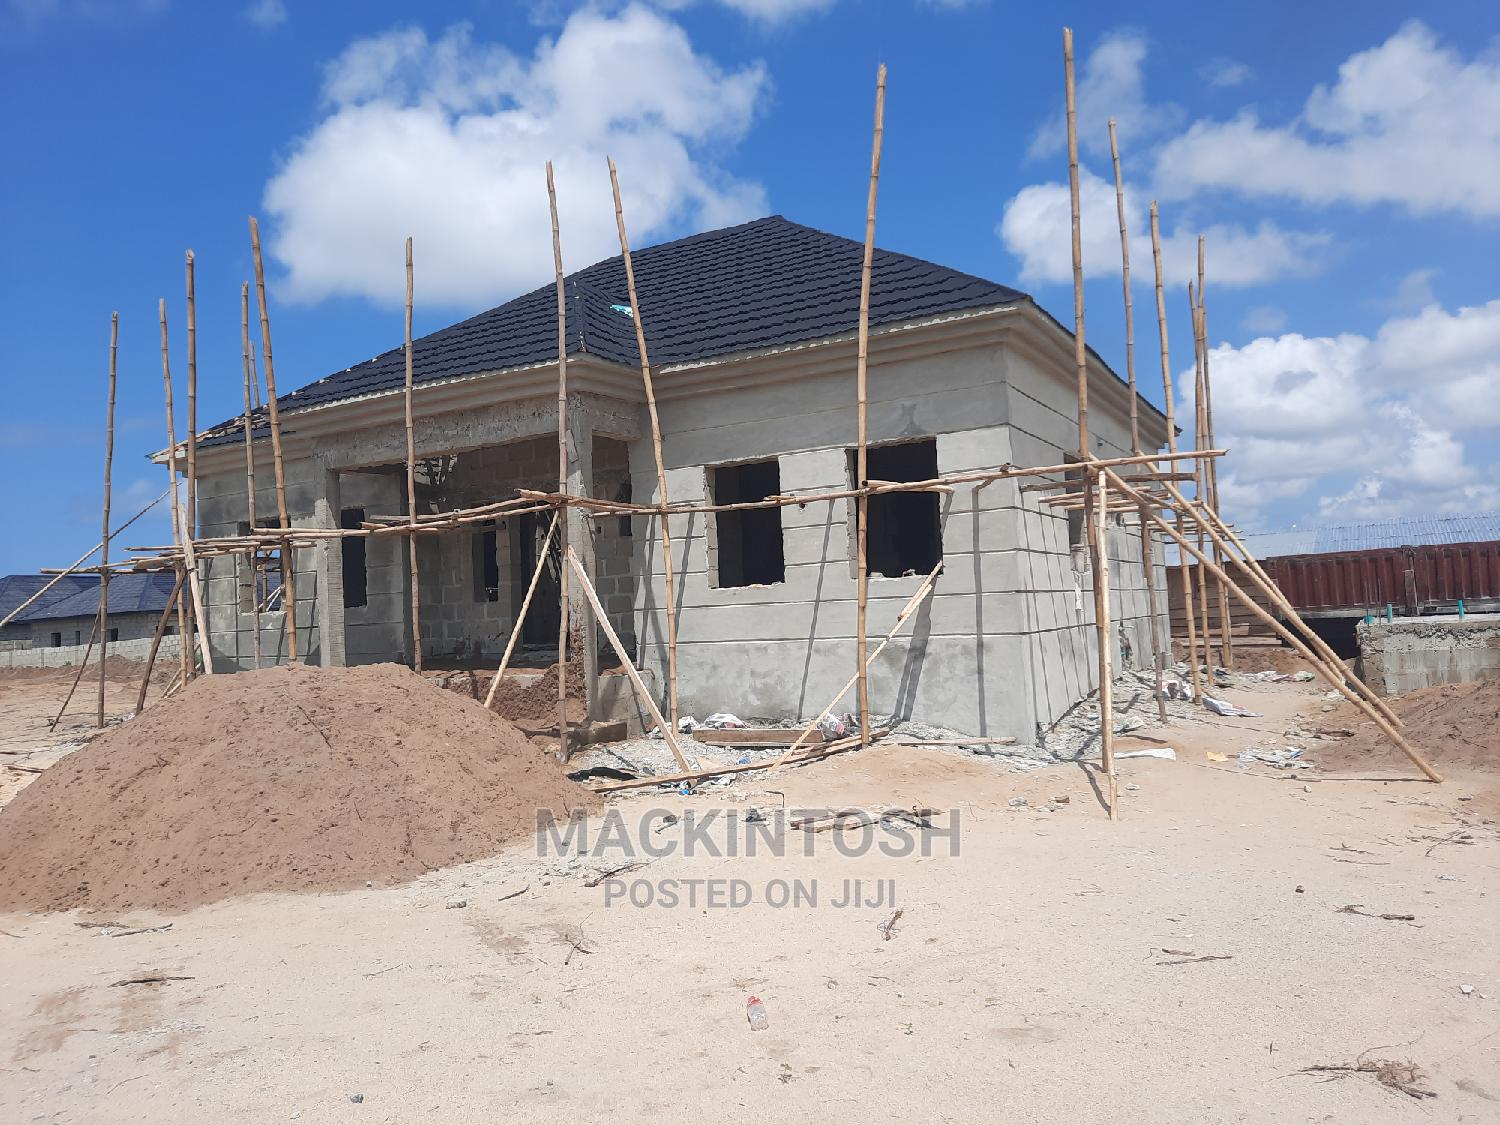 3 Bedrooms Bungalow for Sale in the Castle Homes, Awoyaya   Houses & Apartments For Sale for sale in Awoyaya, Ibeju, Nigeria